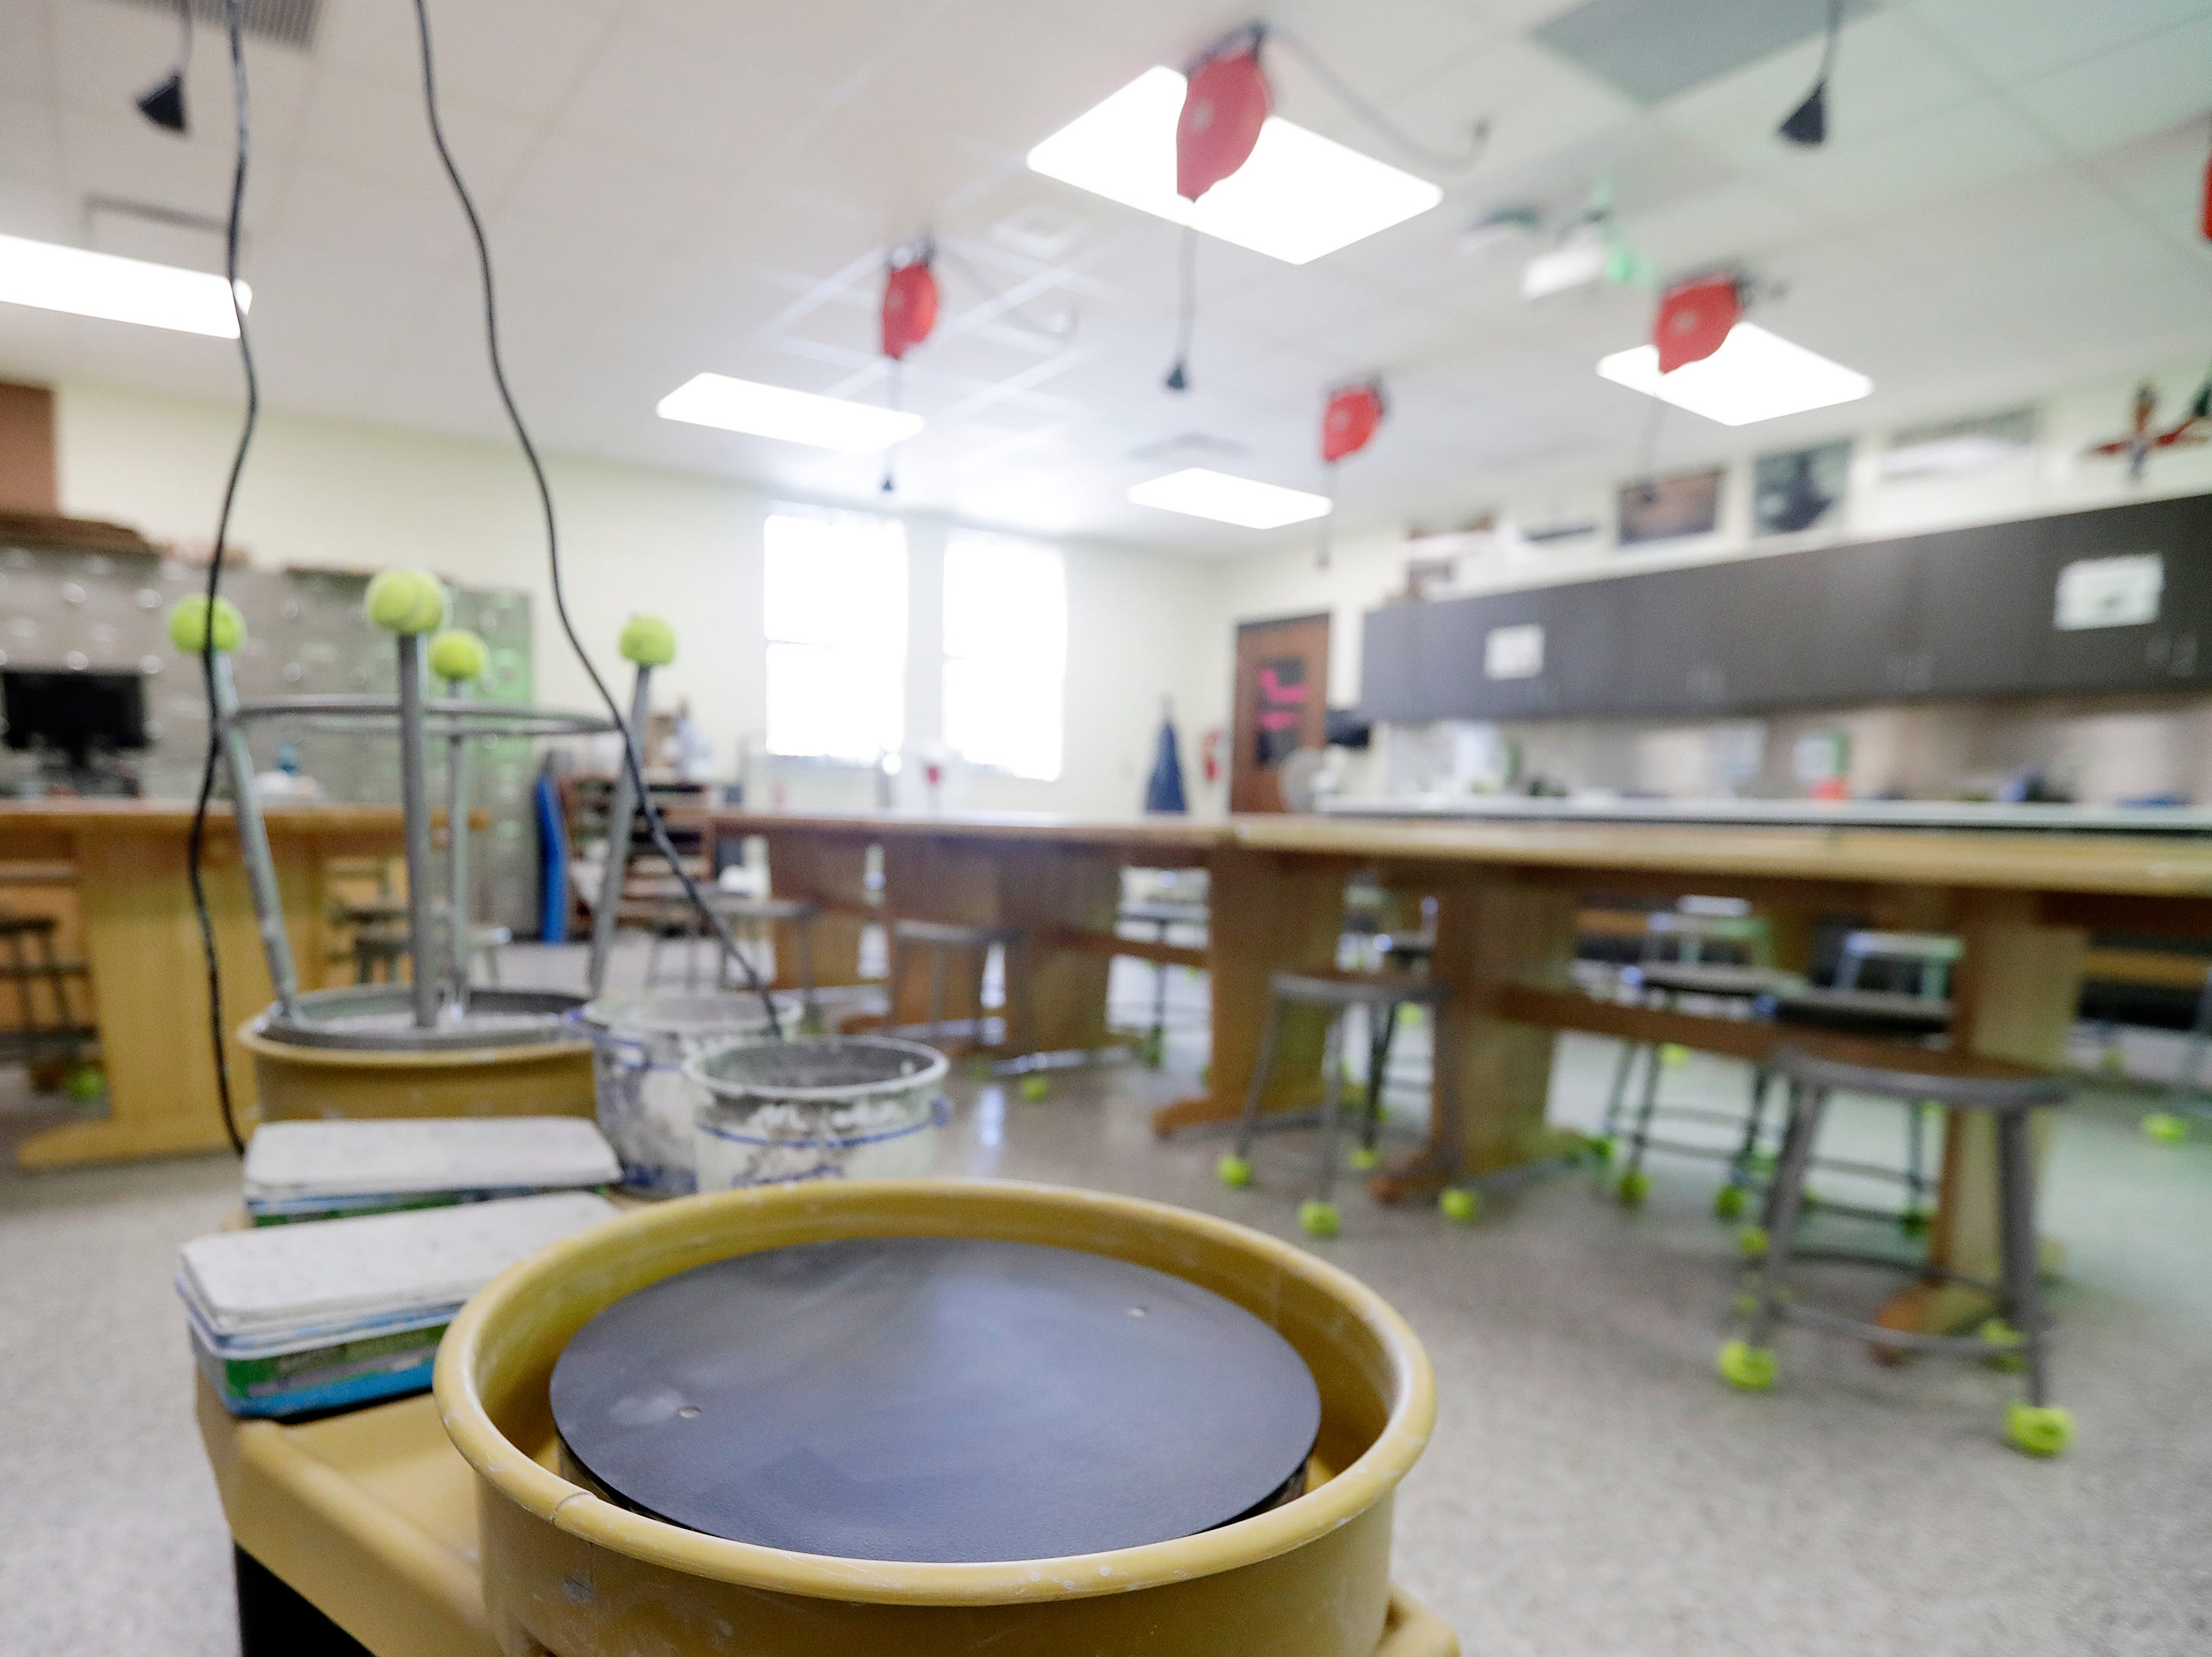 A remodeled art classroom at Washington Middle School is shown on Wednesday, February 13, 2019 in Green Bay, Wis.